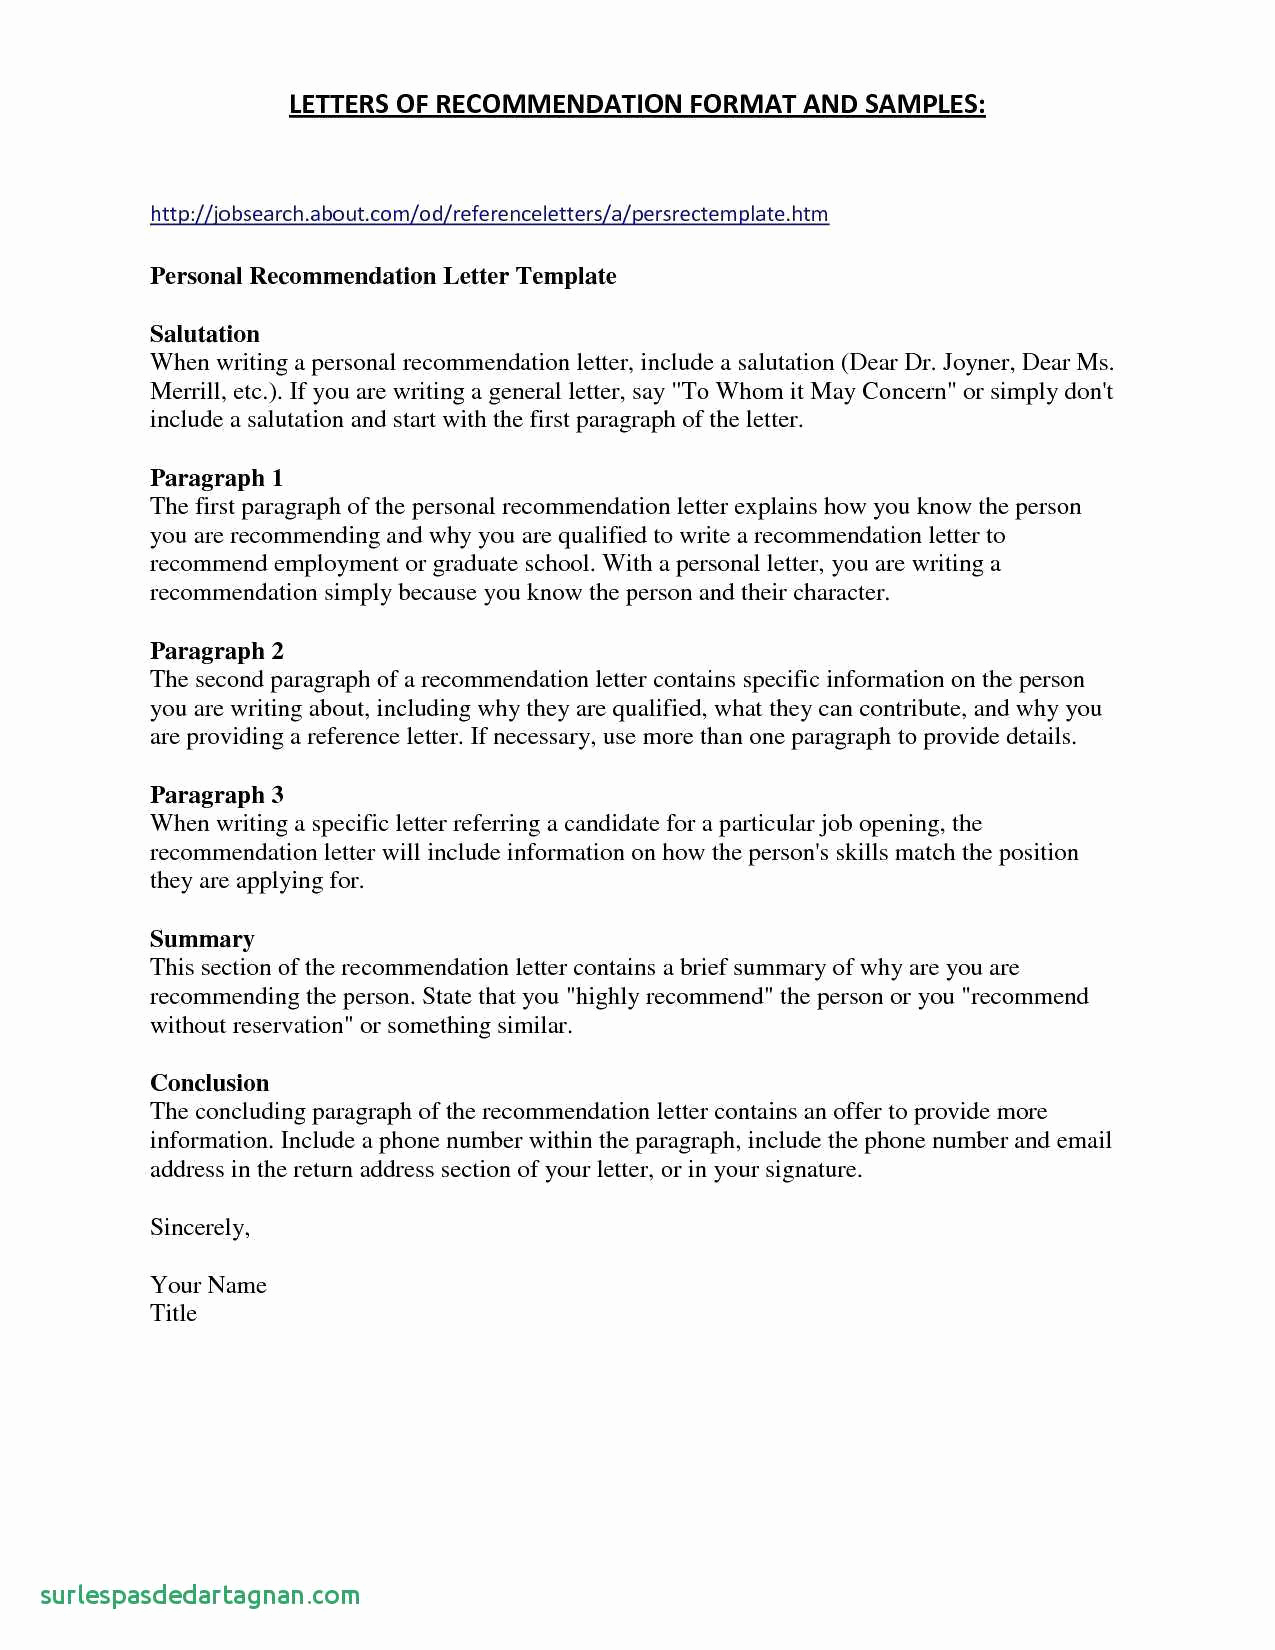 Basic Recommendation Letter Template - Application Follow Up Email Example Awesome Job Fer Follow Up Email